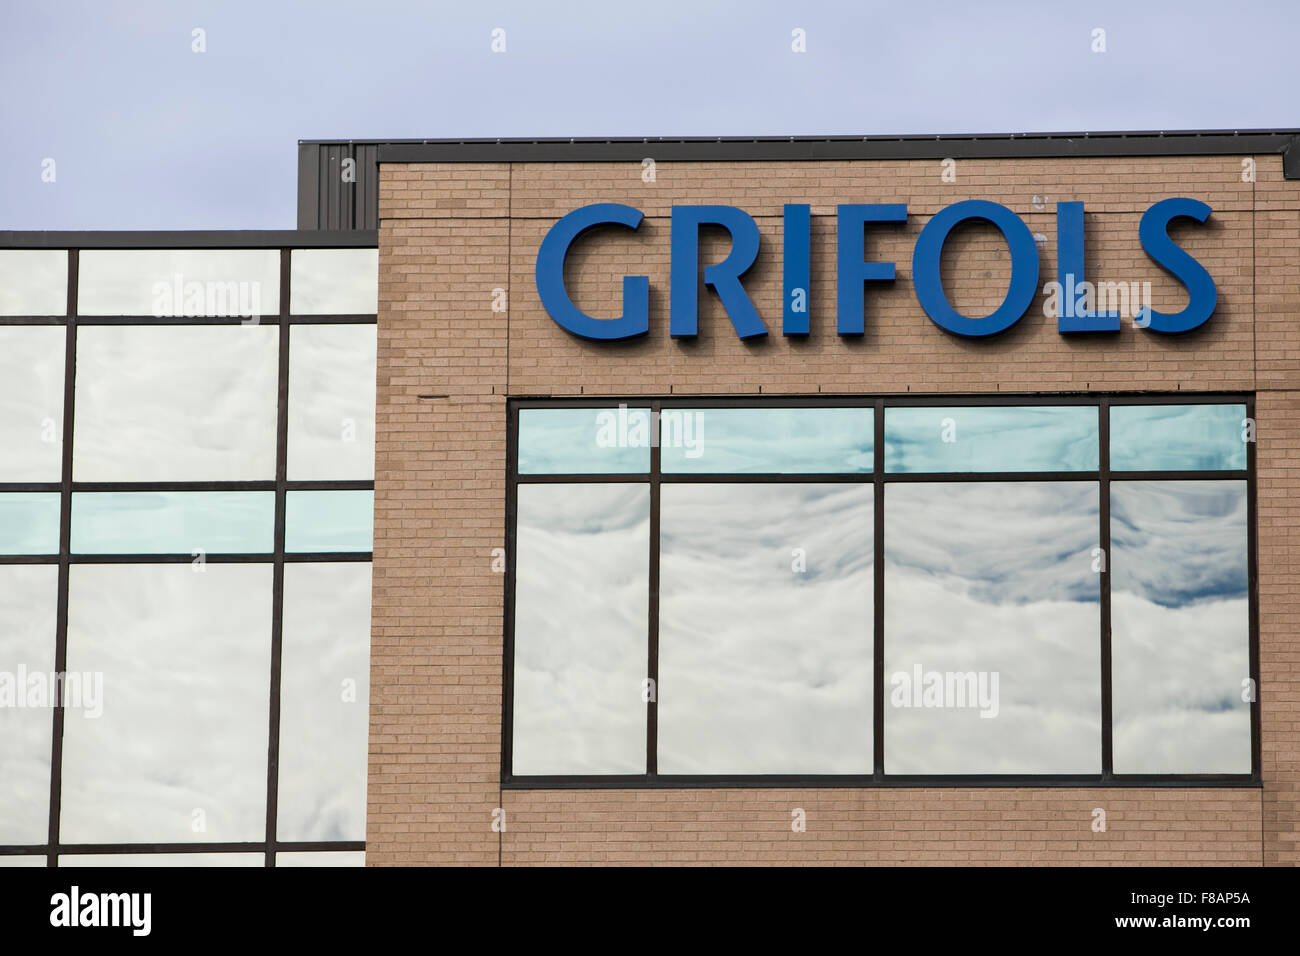 Grifols Stock Photos & Grifols Stock Images - Alamy